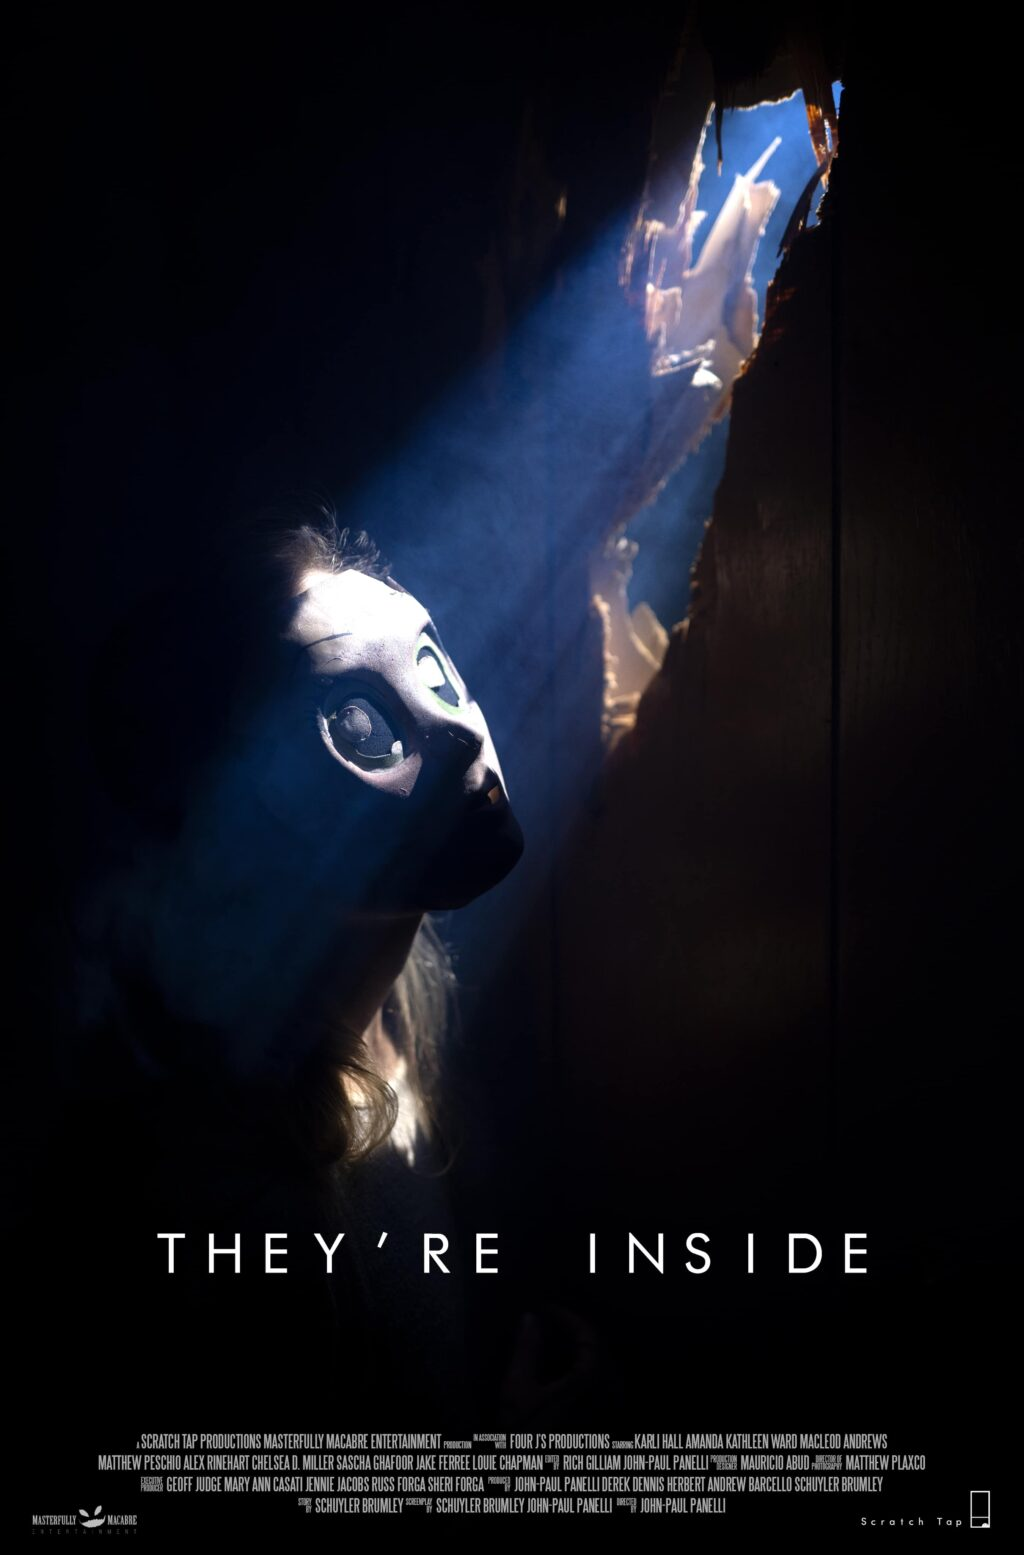 Premiere Theyre Inside Poster 1024x1555 - DREAD Presents: THEY'RE INSIDE and ASSASSINAUT Join the Family!